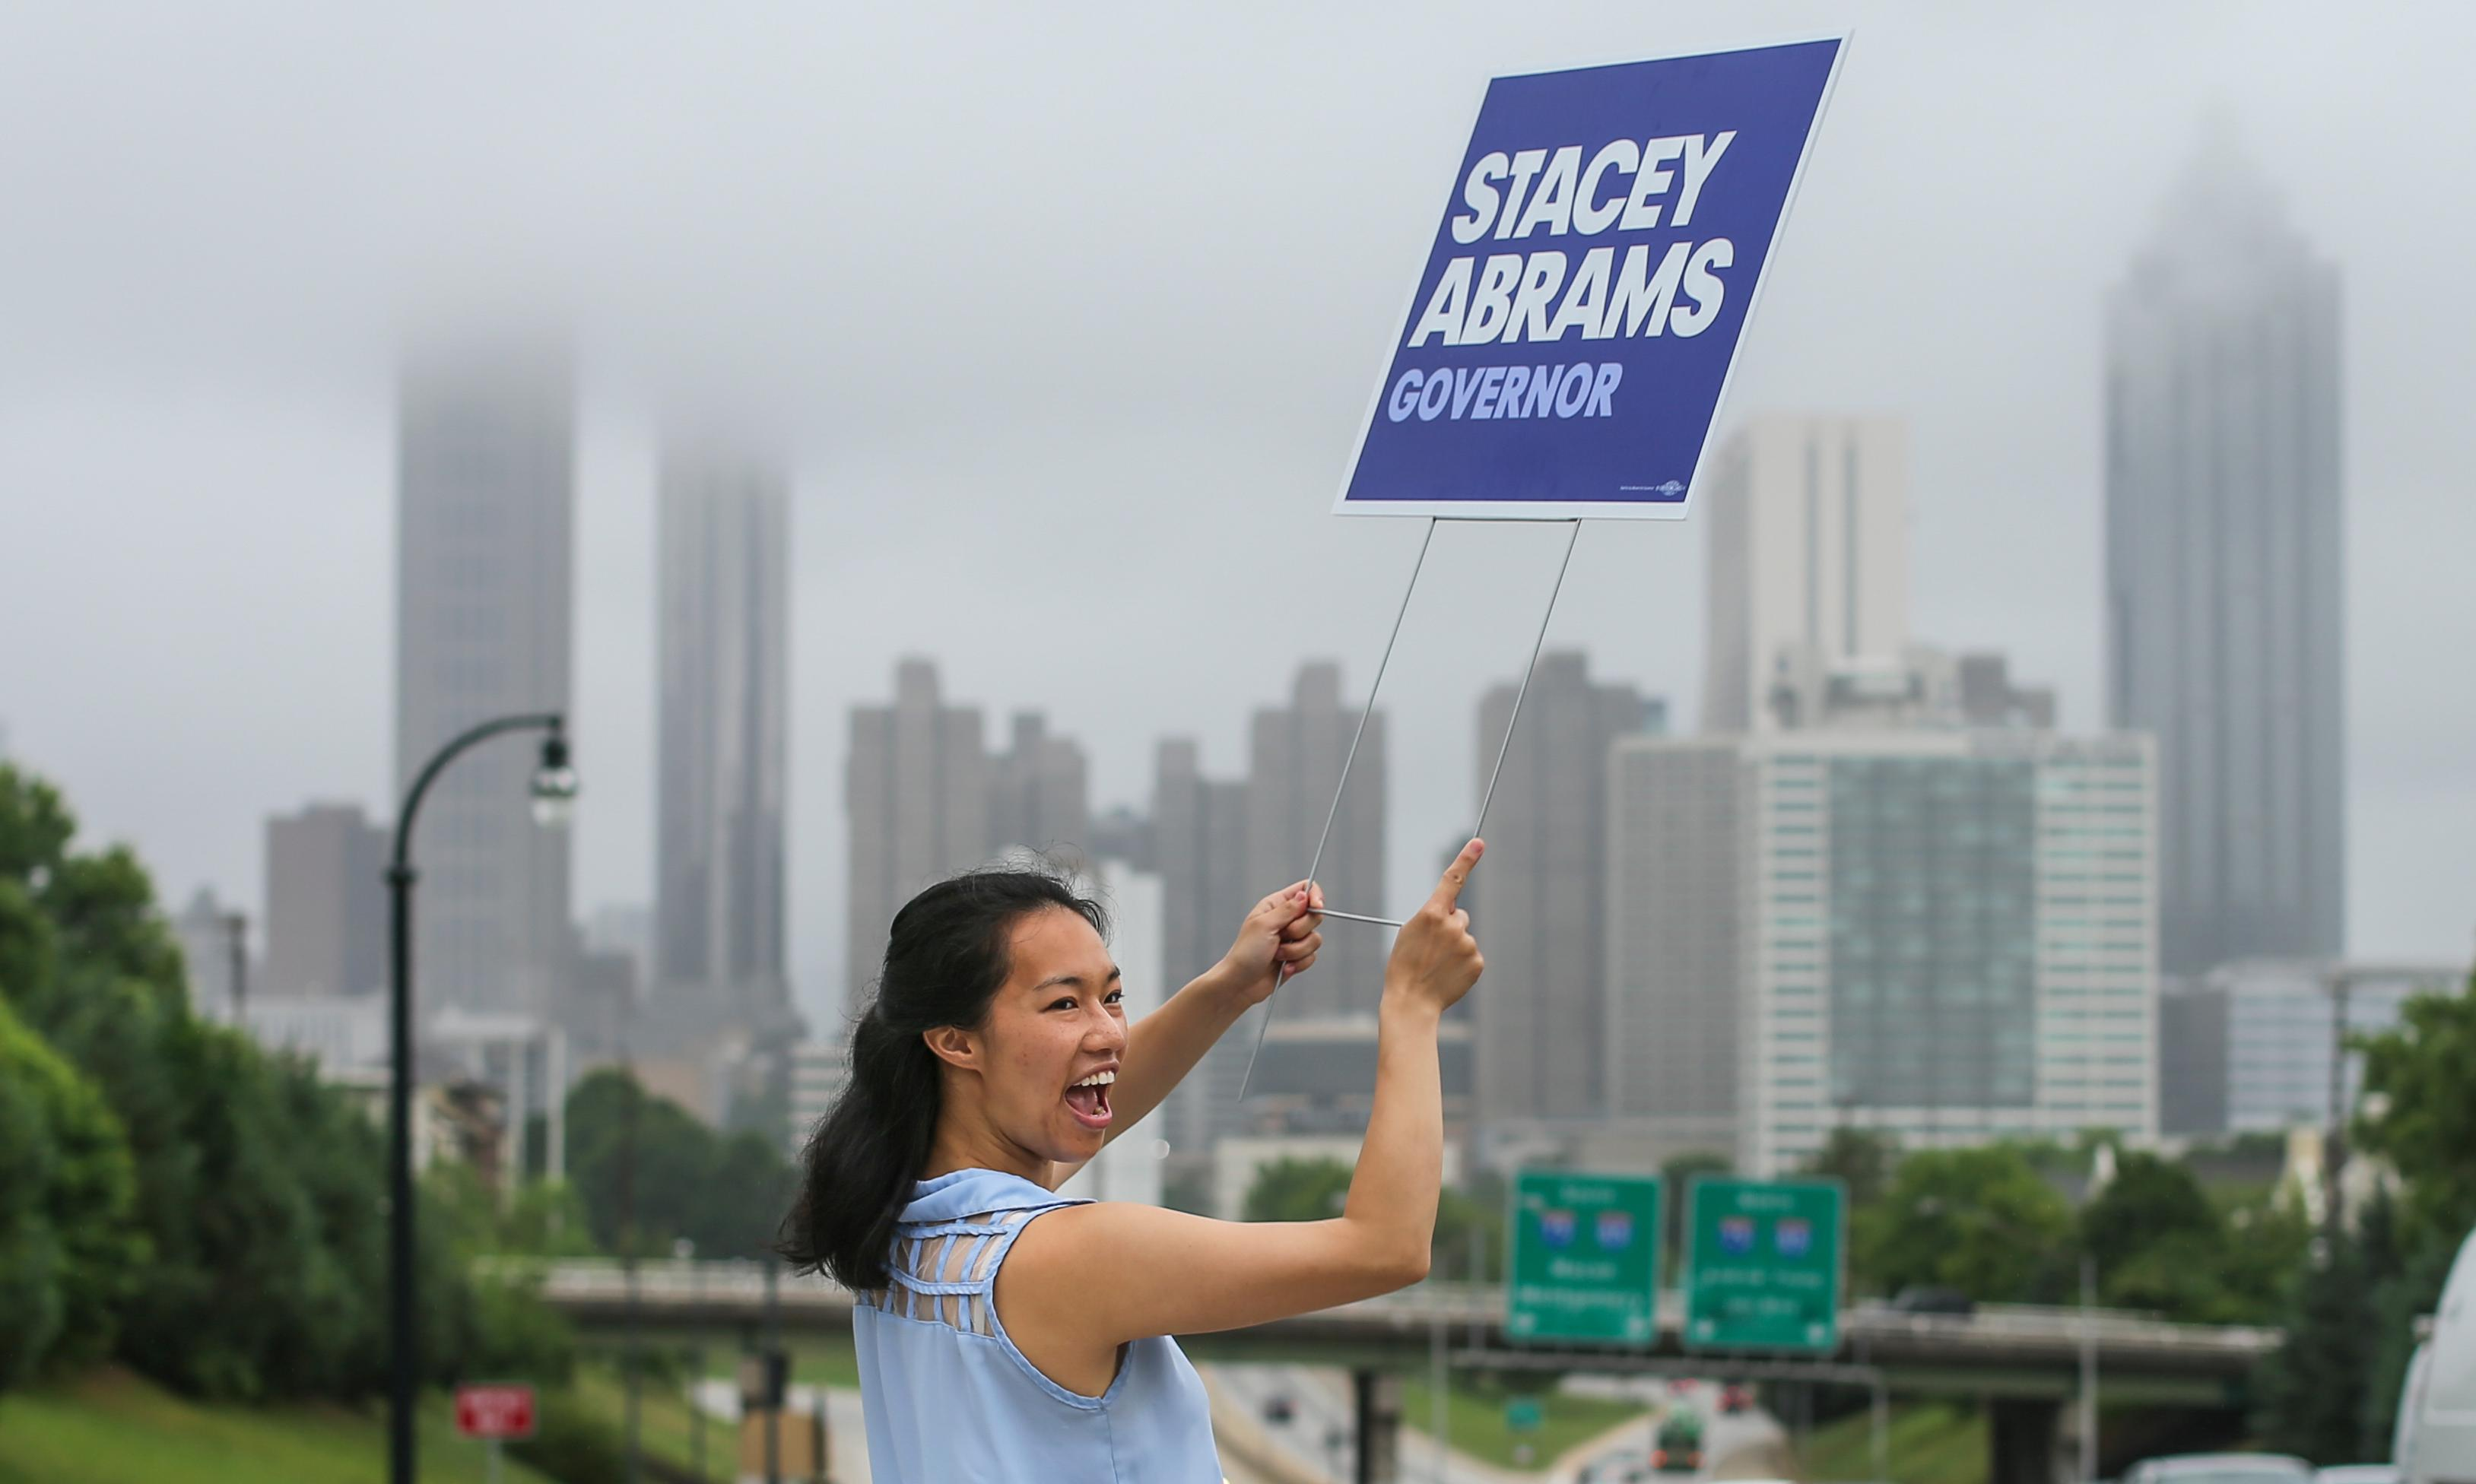 Mia Lei from Oakland, California chose Freedom Parkway and Boulevard to campaign for Gubernatorial candidate, Stacey Abrams on Tuesday May 22, 2018. Lei joined other Californians who came to Atlanta to campaign for Abrams. Voters across the state are reported to their regular precincts to{ }decide{ }on candidates for governor, Congress and statewide races in the Democratic and Republican primaries. (John Spink/Atlanta Journal-Constitution via AP)